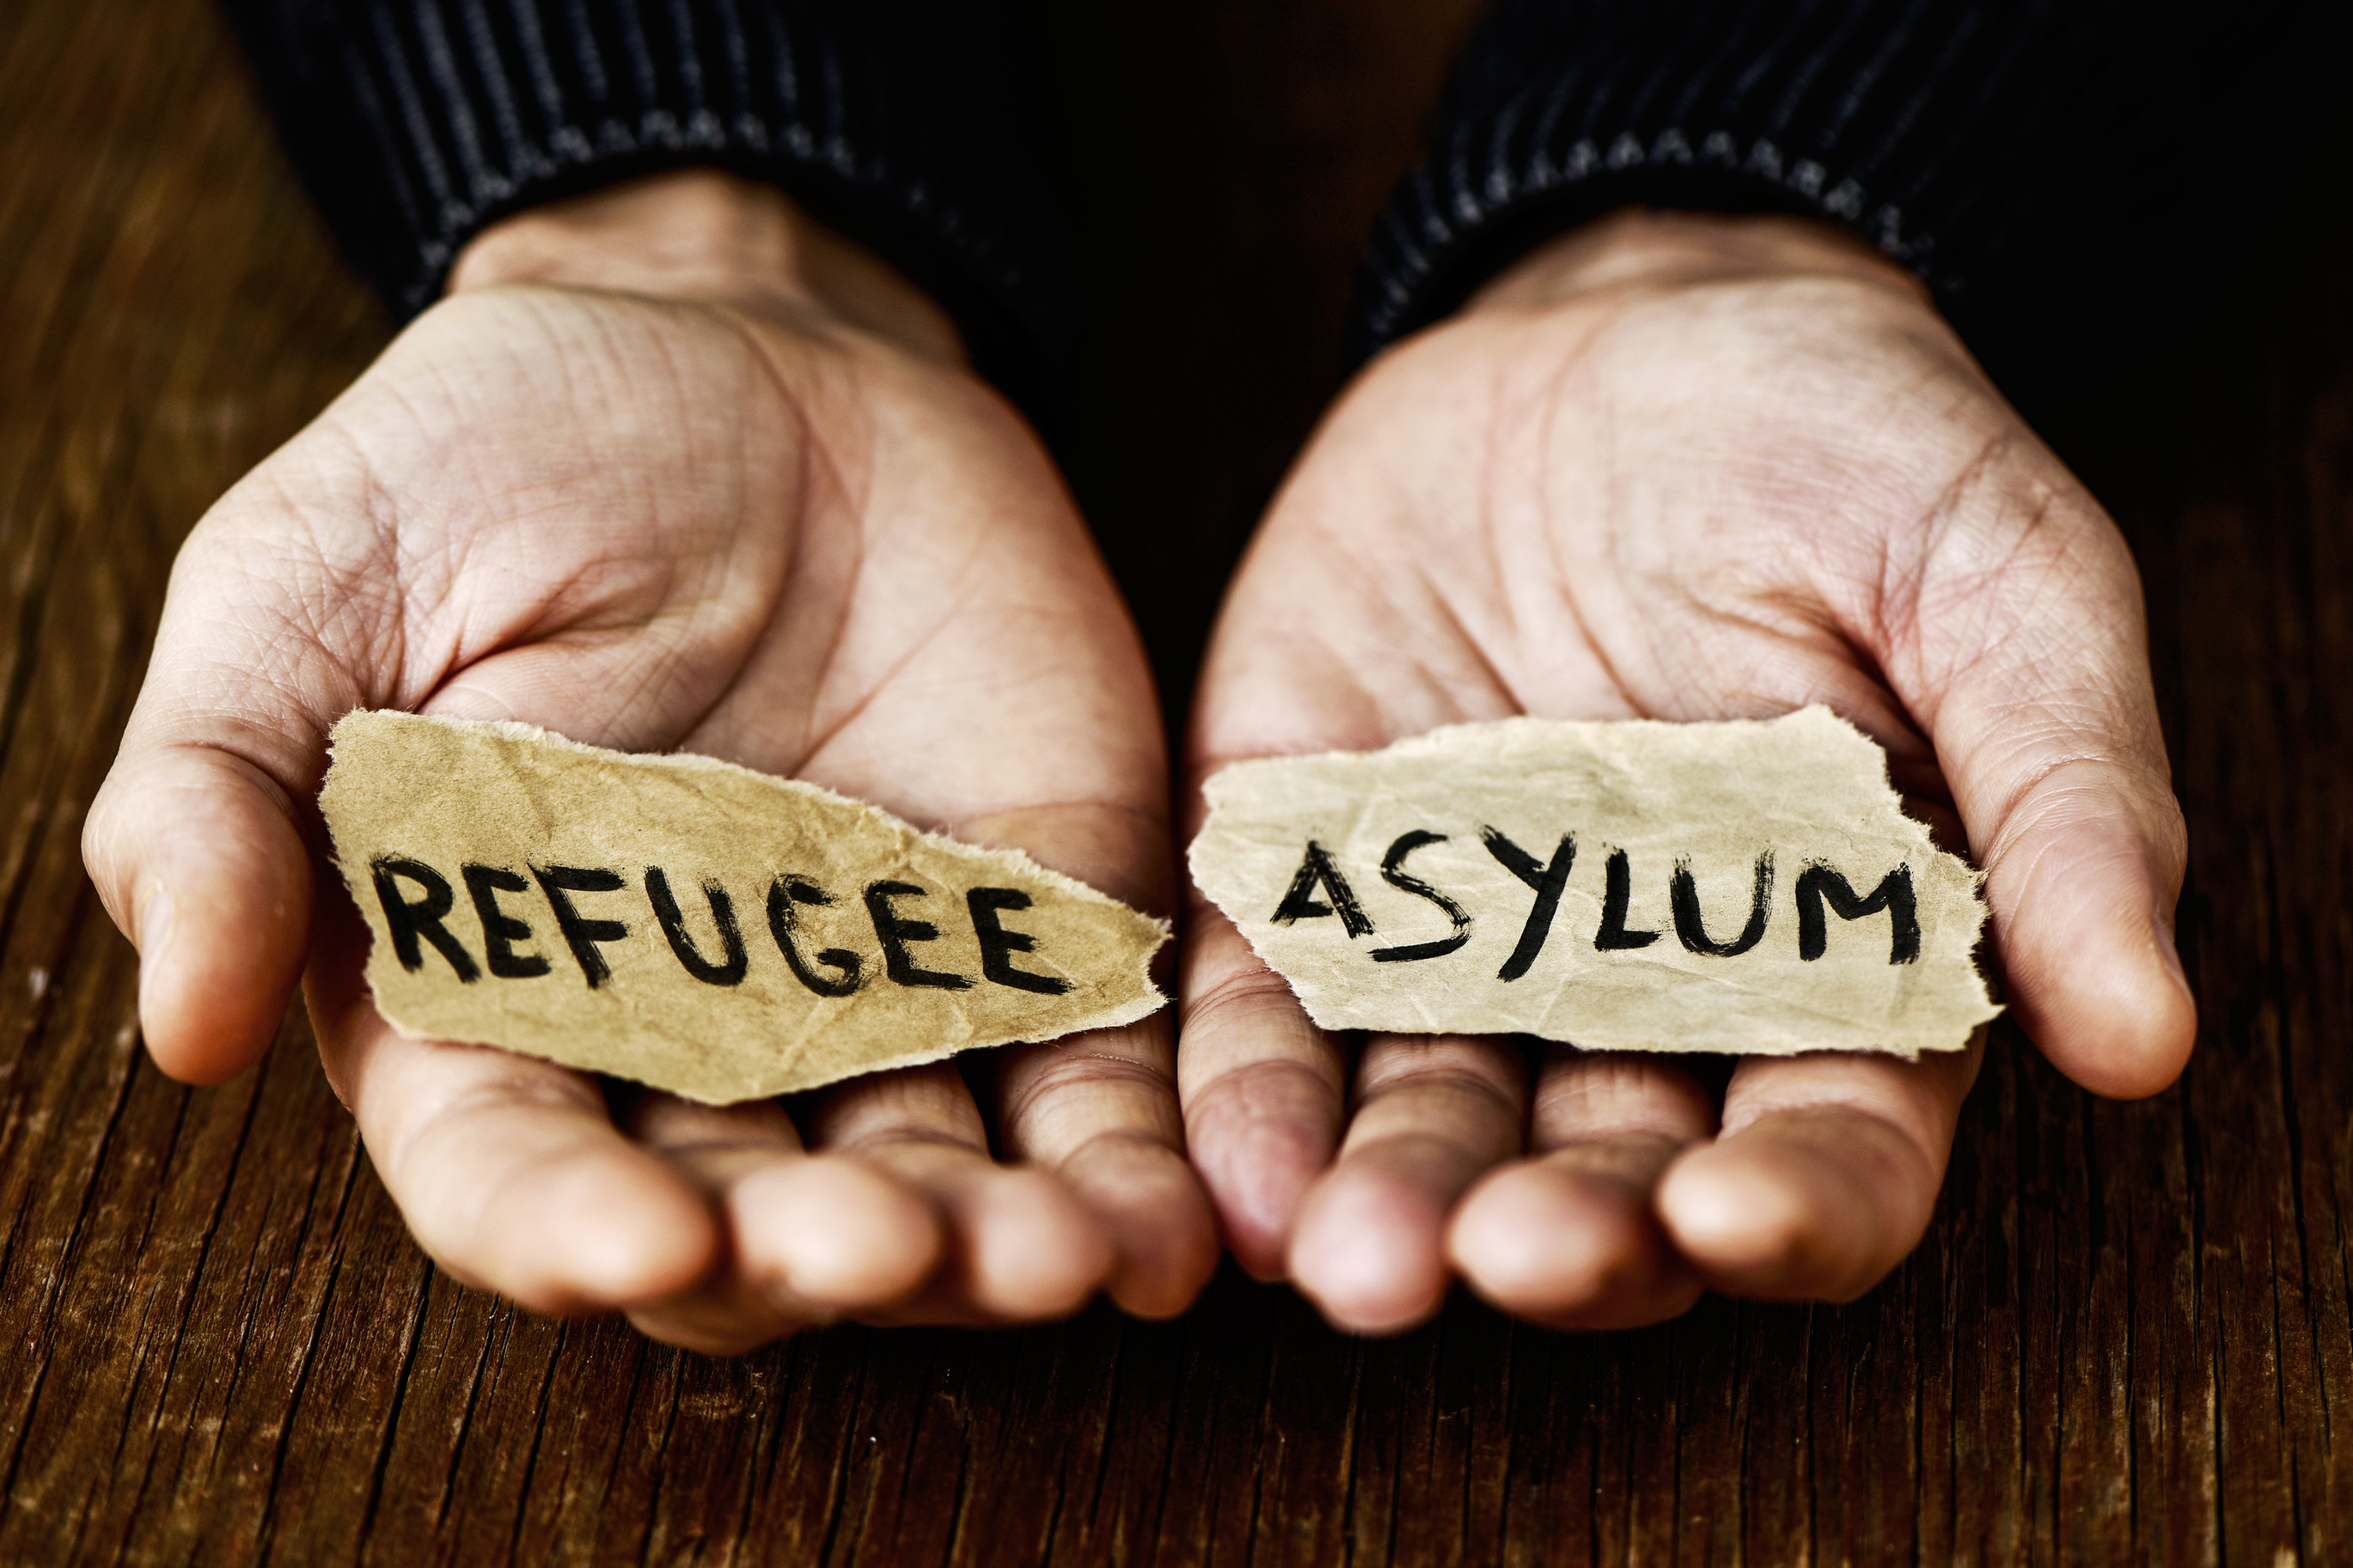 Are you a Refugee or Asylum Seeker?